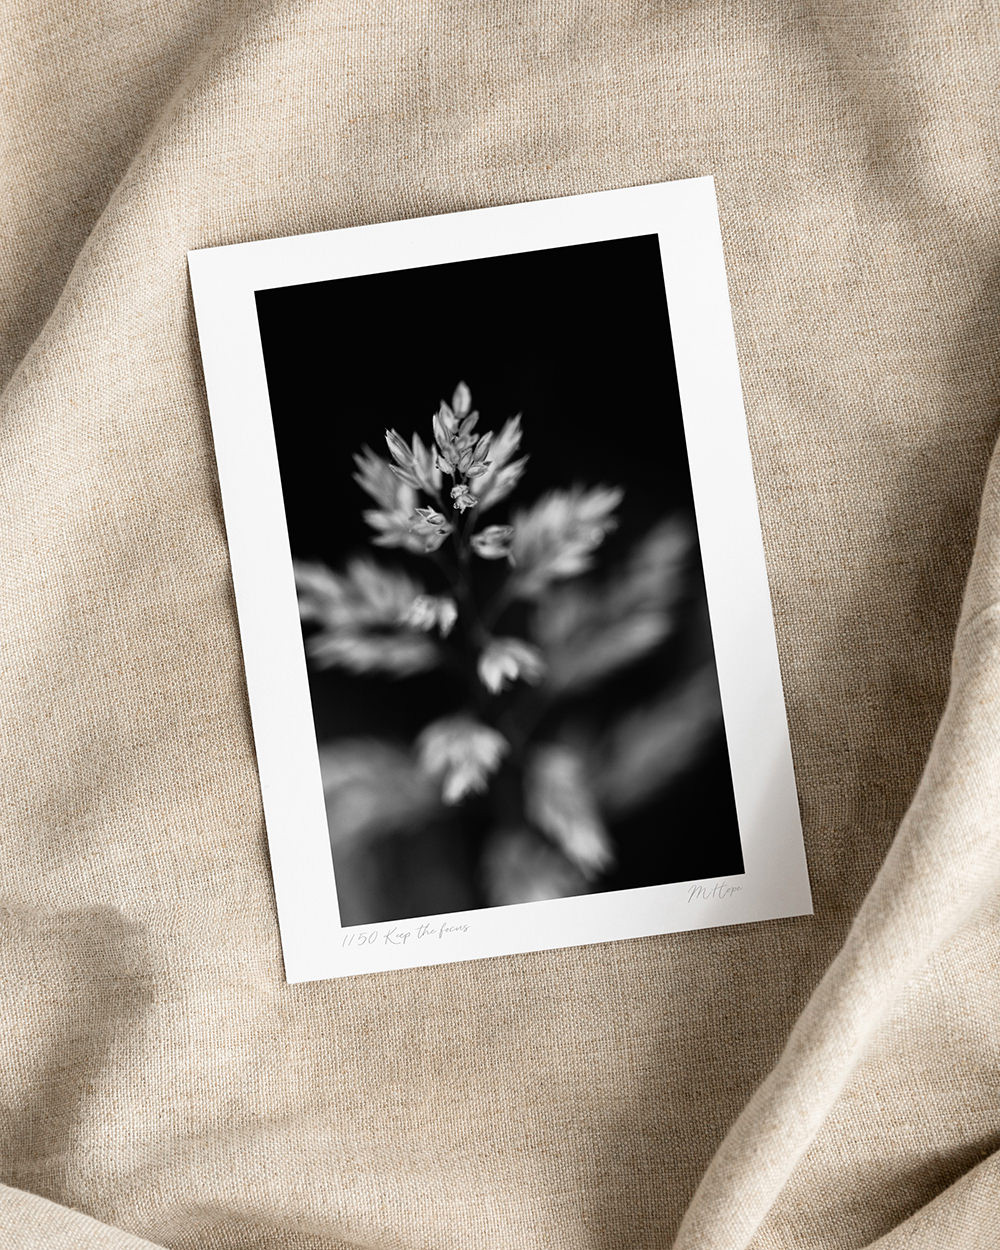 Limited edition photography print, signed, black and white macro flower